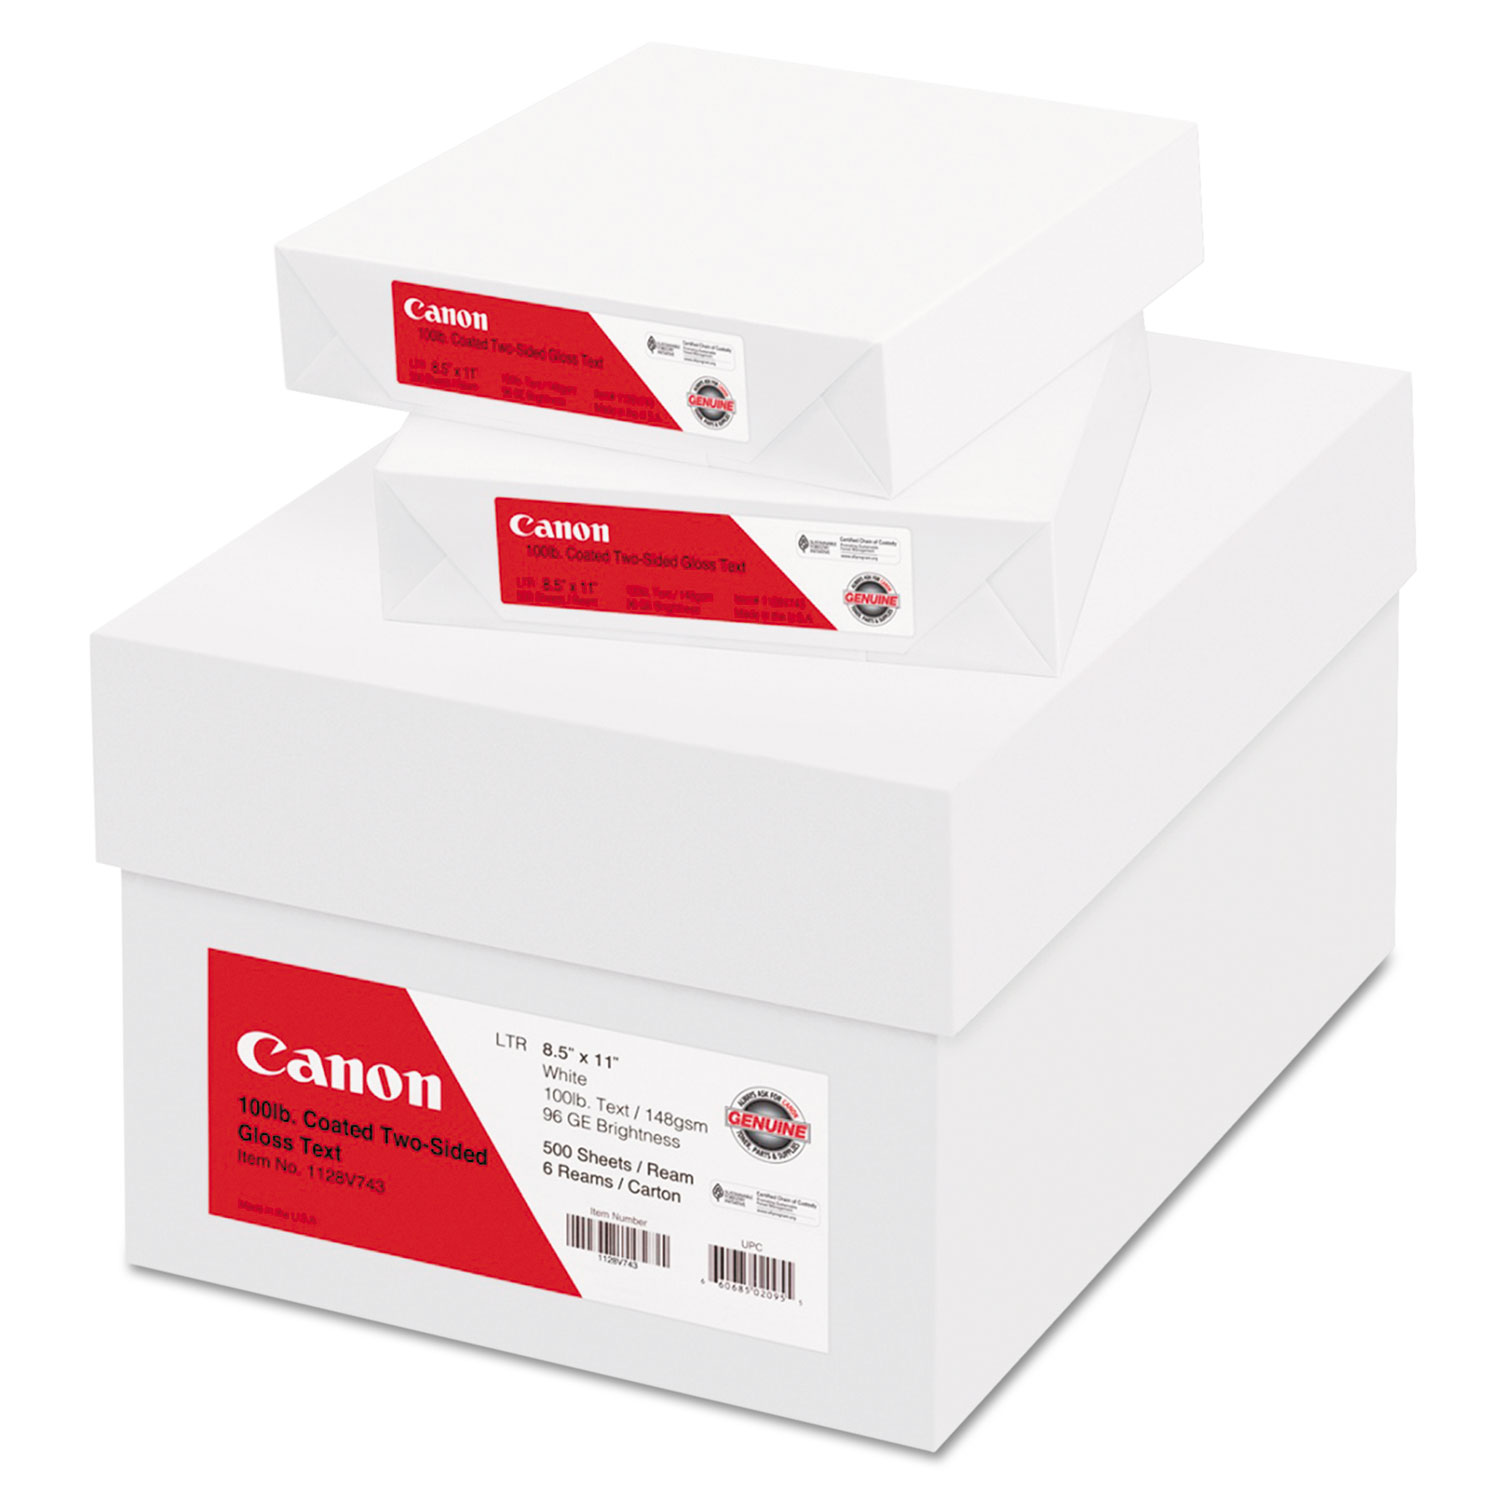 Coated Two Sided Gloss Text Paper By Canon Cnm1128v743